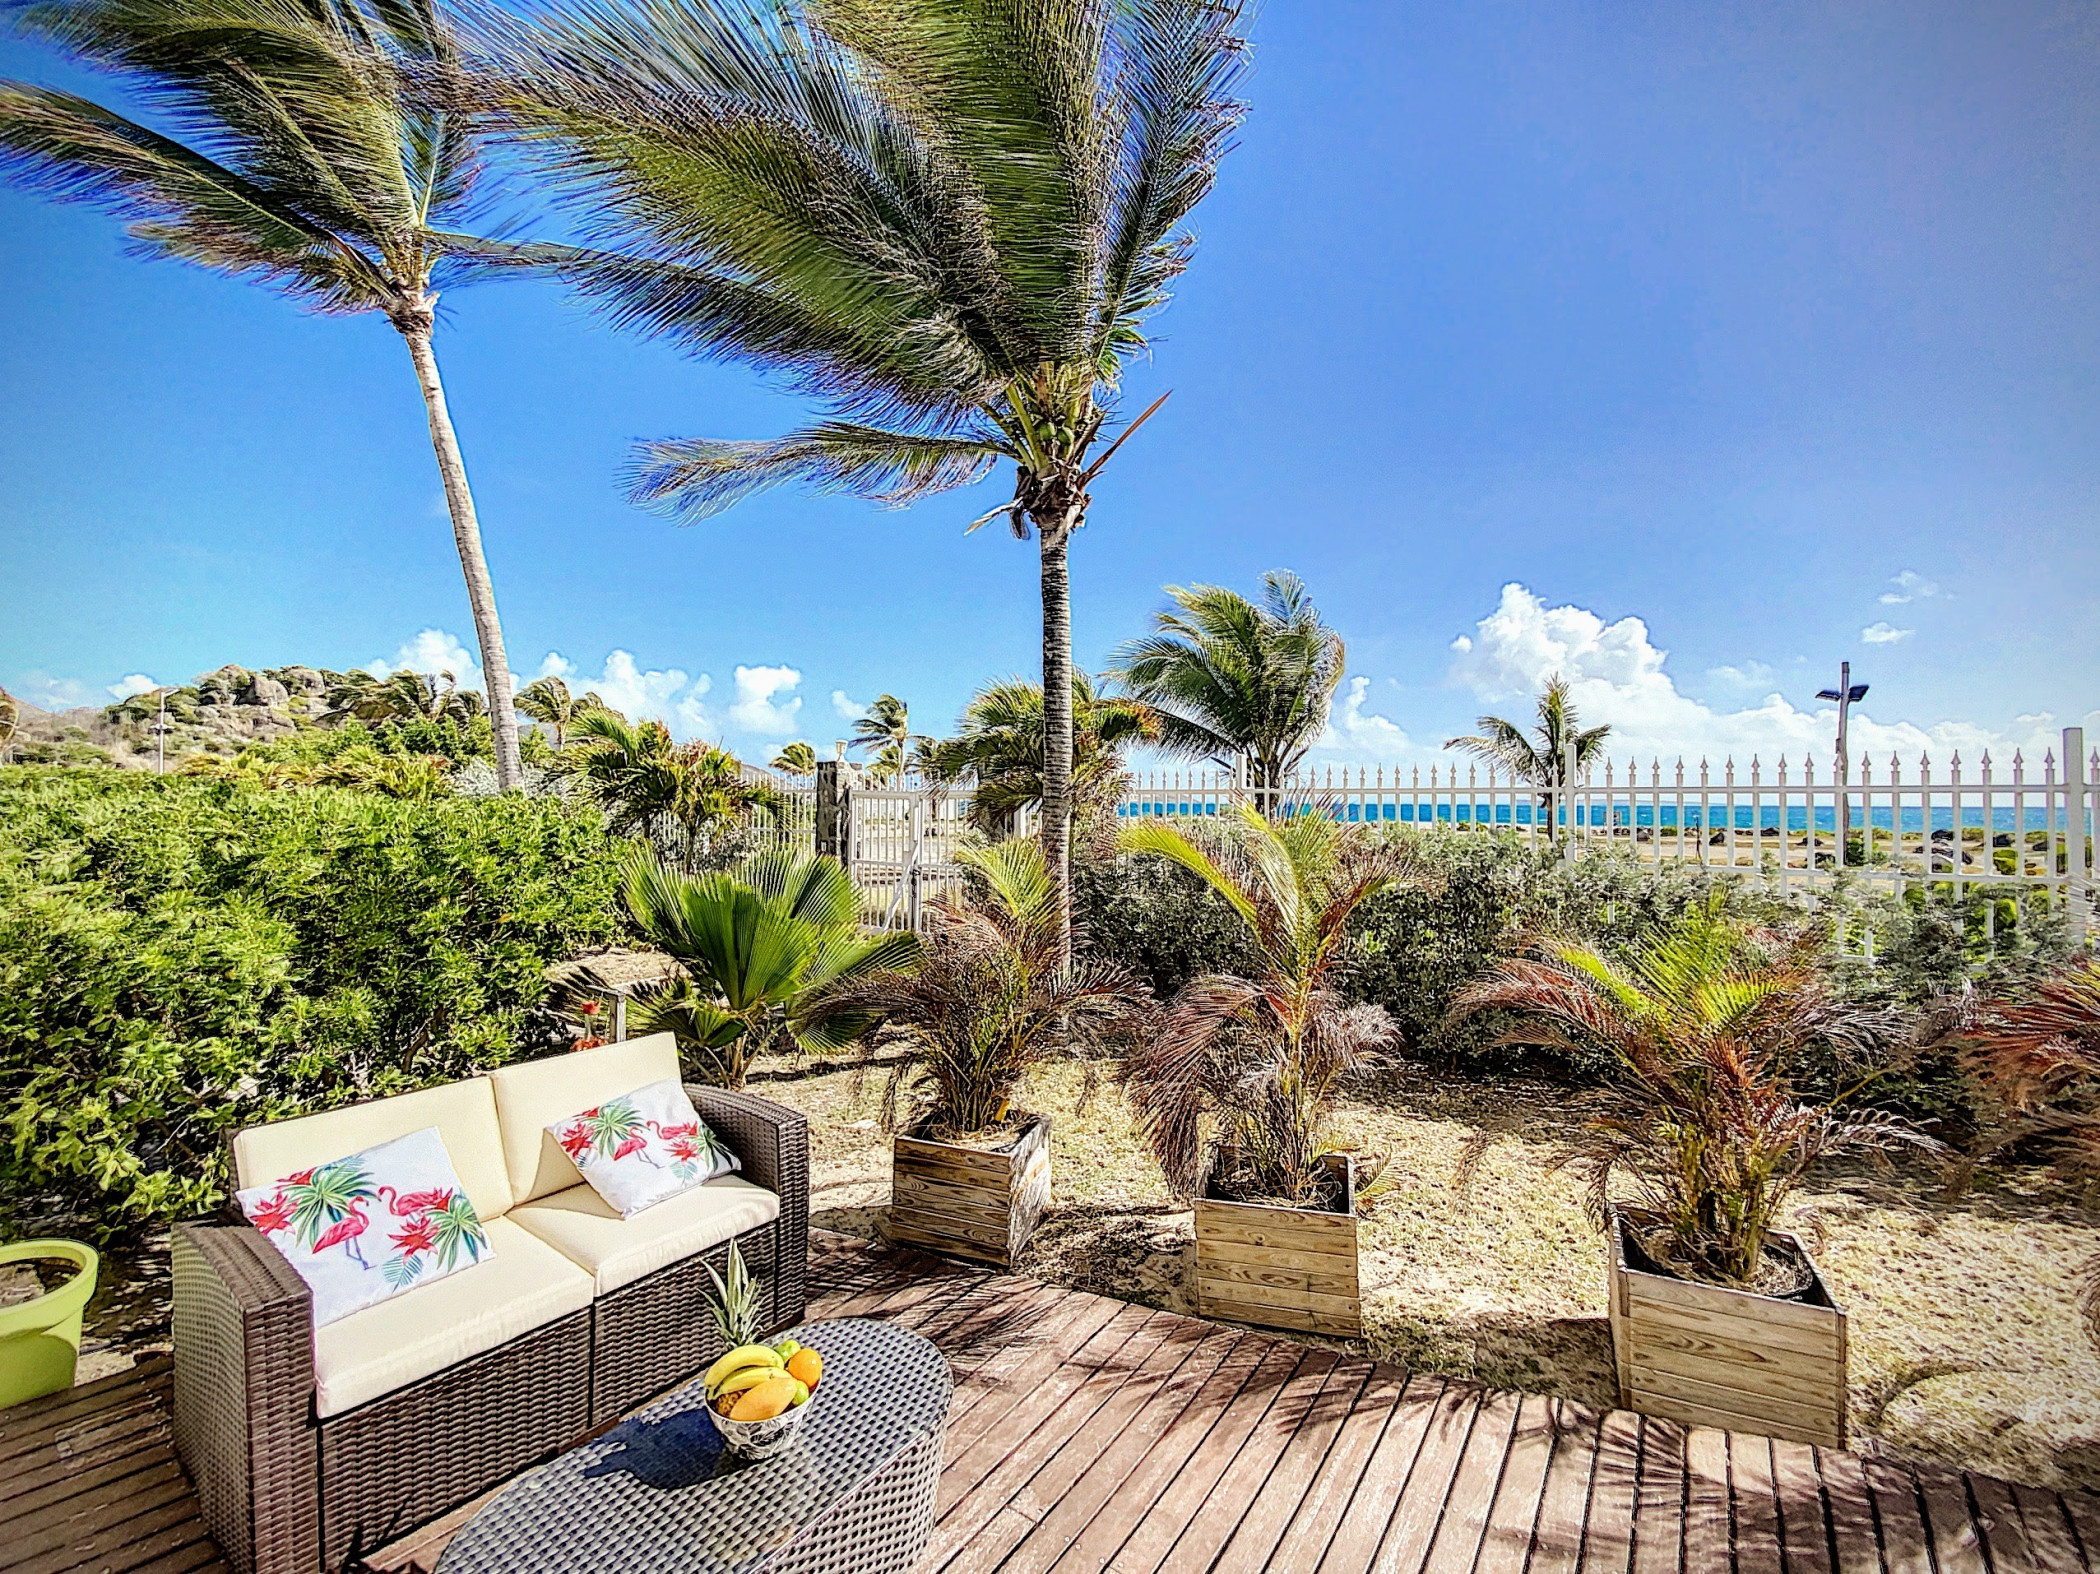 Princess Coco, bel appartement RDC sur la plage d'Orient Bay